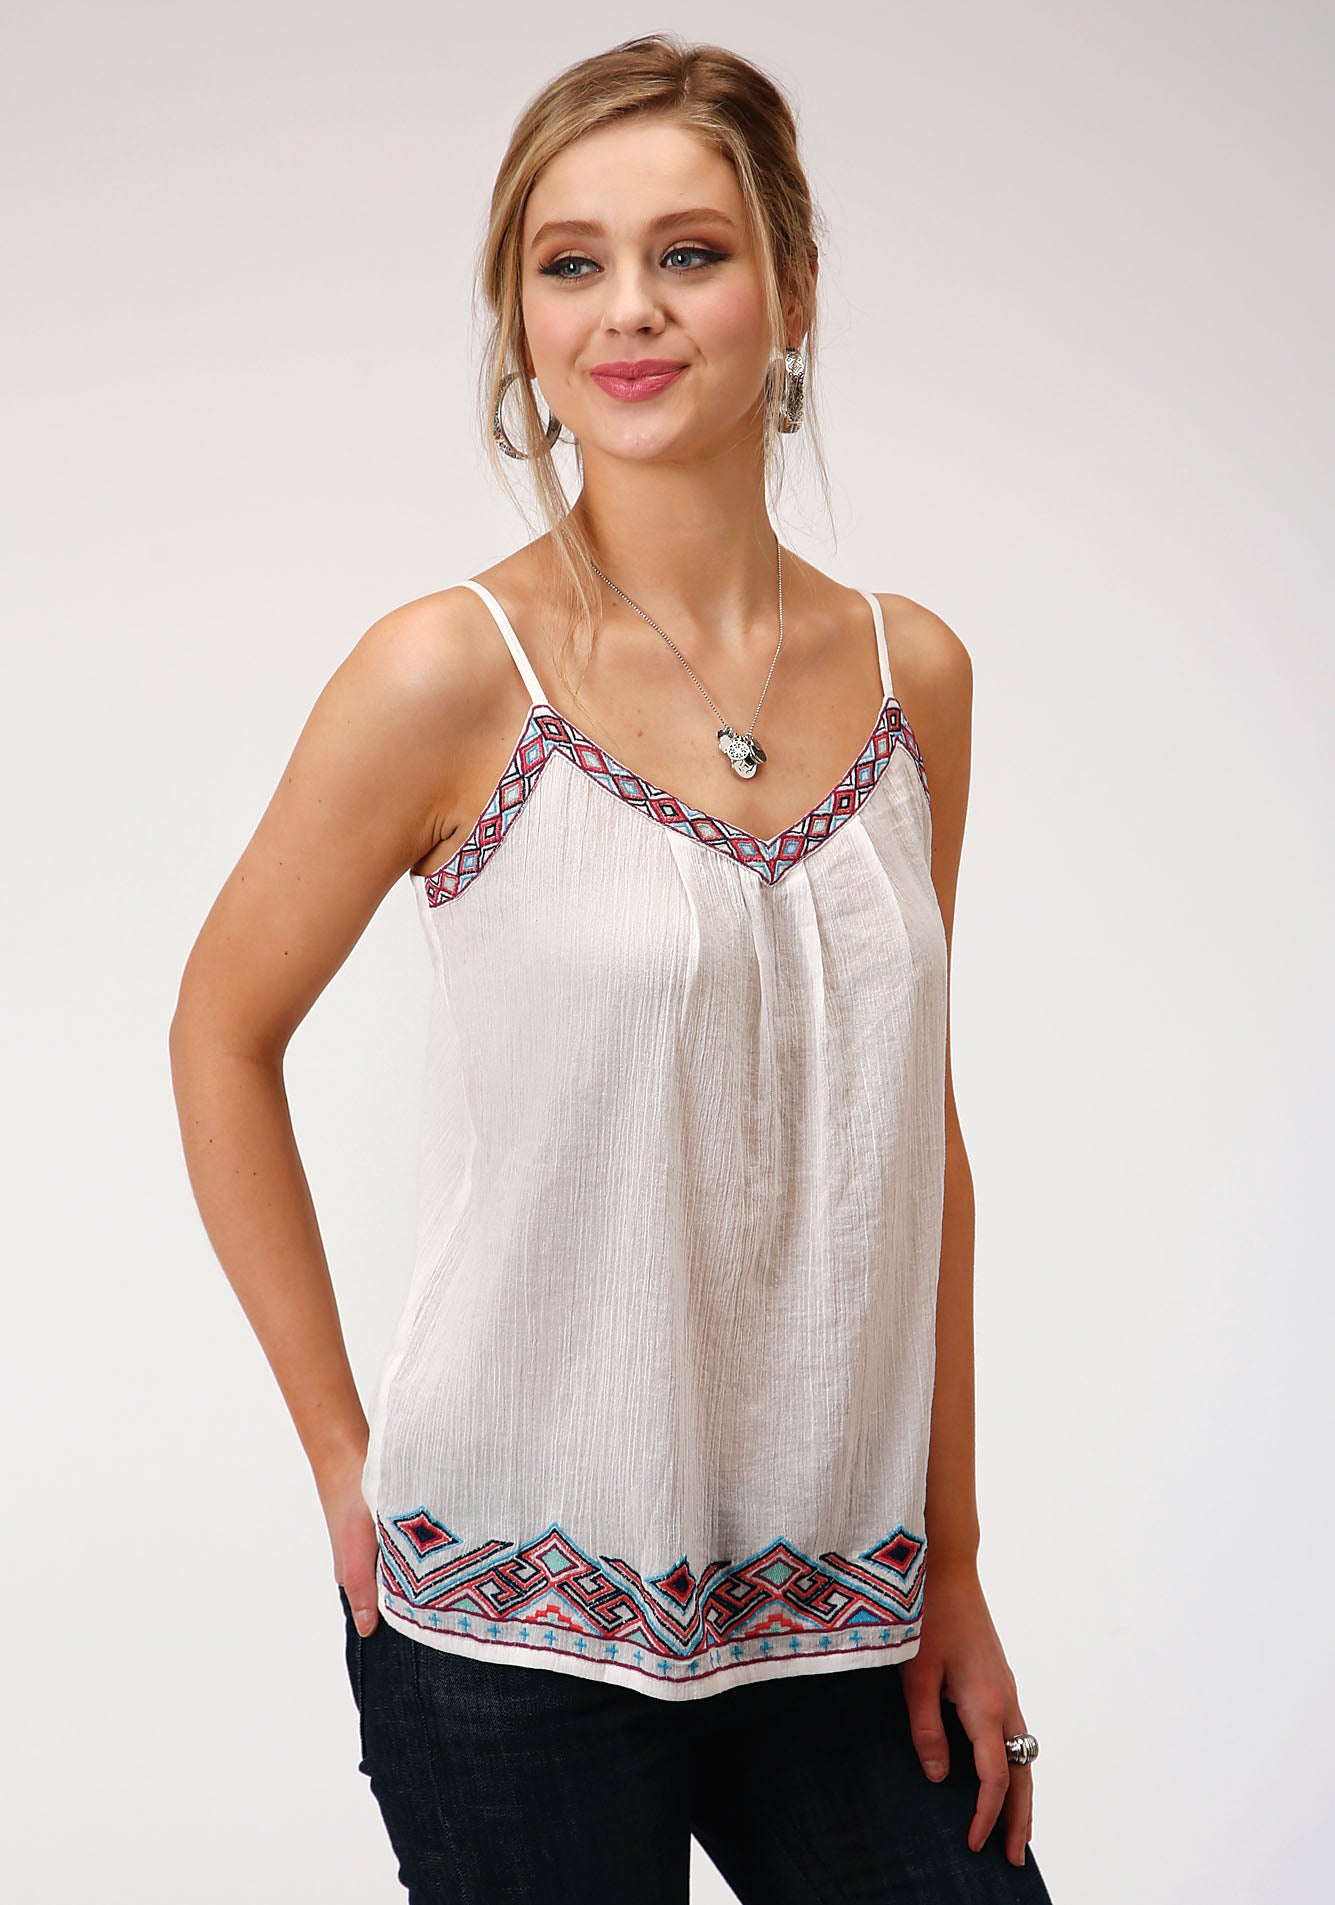 ROPER WOMENS WHITE 00127 COTTON CREPE SPAGHETTI STRAP TOP FIVE STAR COLLECTION- SPRING II SLEEVELESS